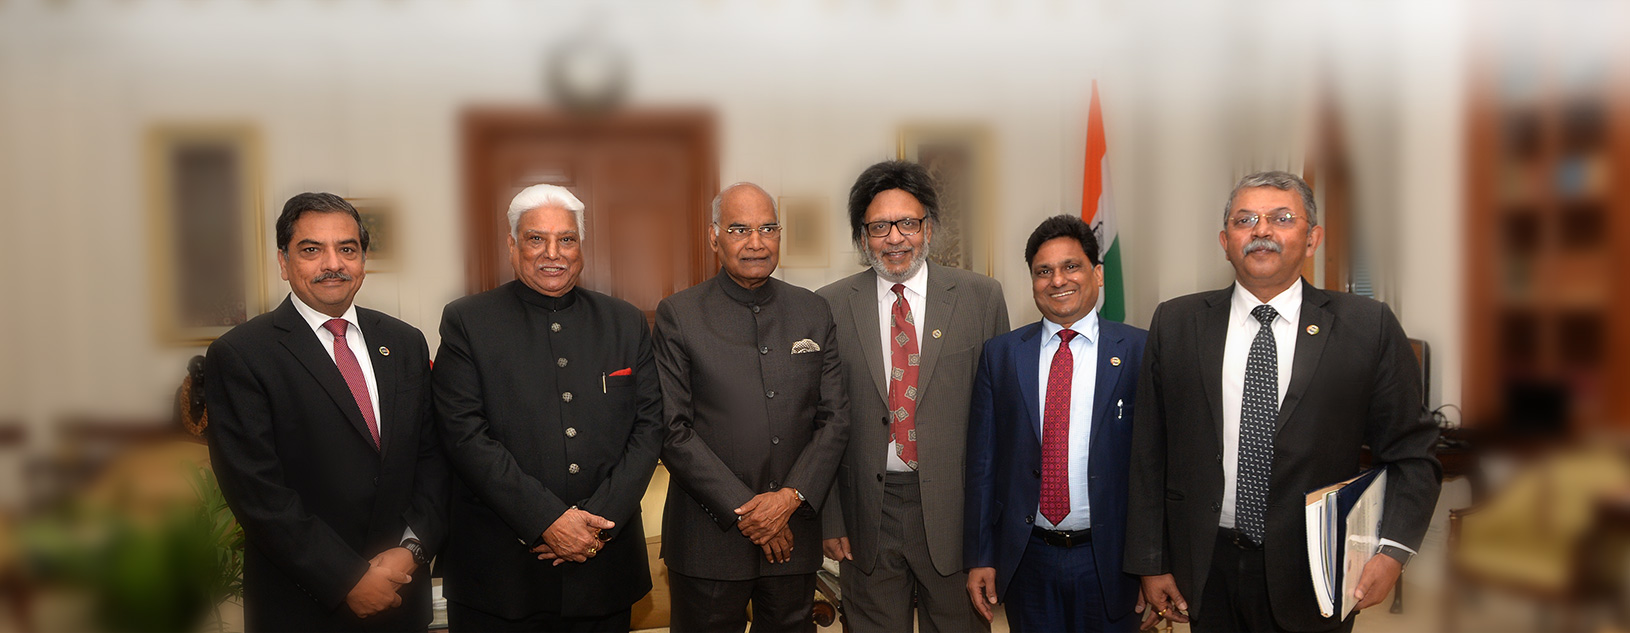 Meeting With Honourable President of India